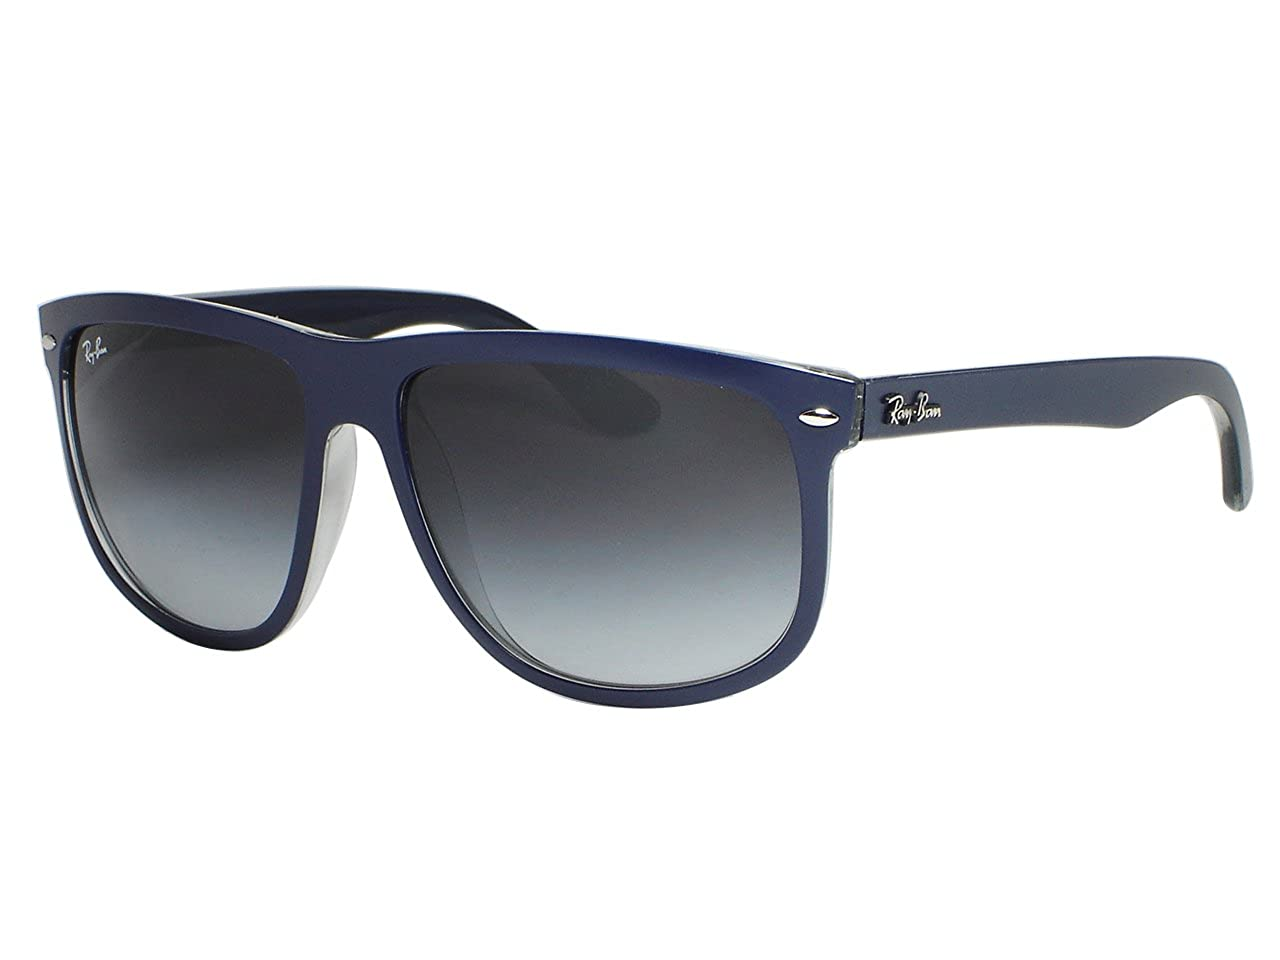 03aca7e2ff6 Ray Ban RB4147 6132 8G Top Matte Blue On Grey   Grey Gradient Sunglasses  60mm  Amazon.ca  Clothing   Accessories